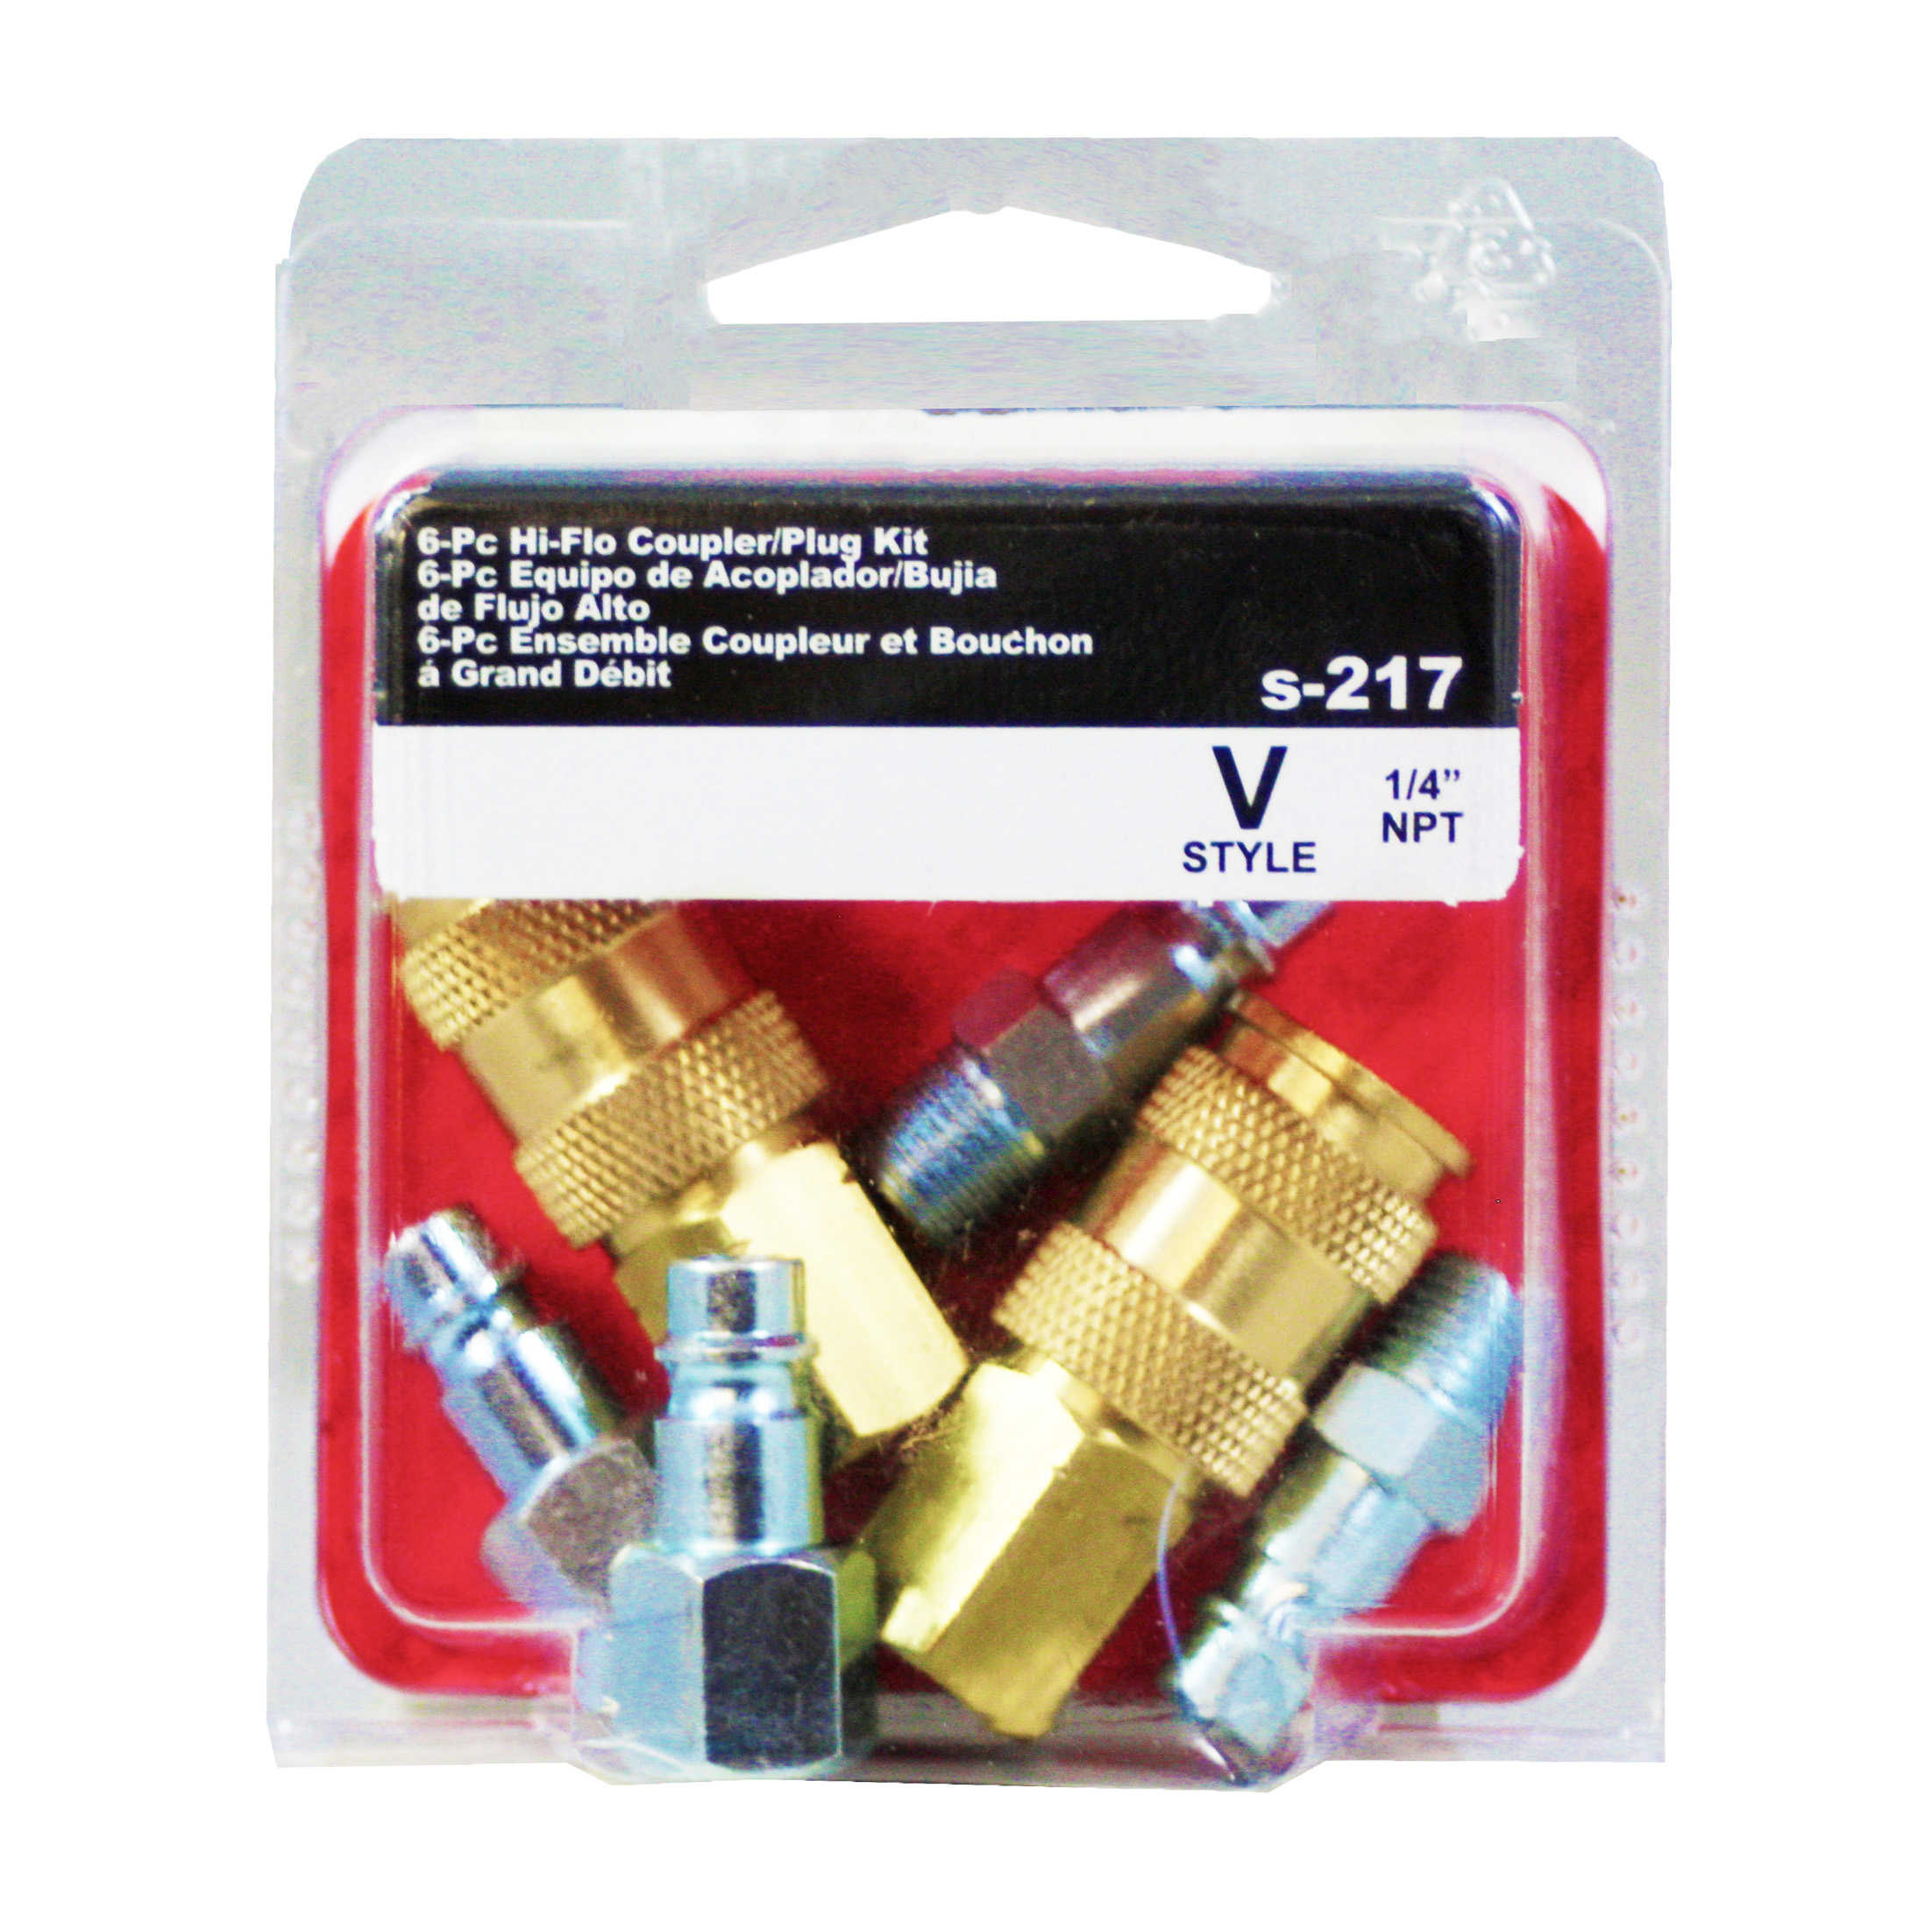 Milton S-217 1/4' NPT V Style Coupler and Plug Kit